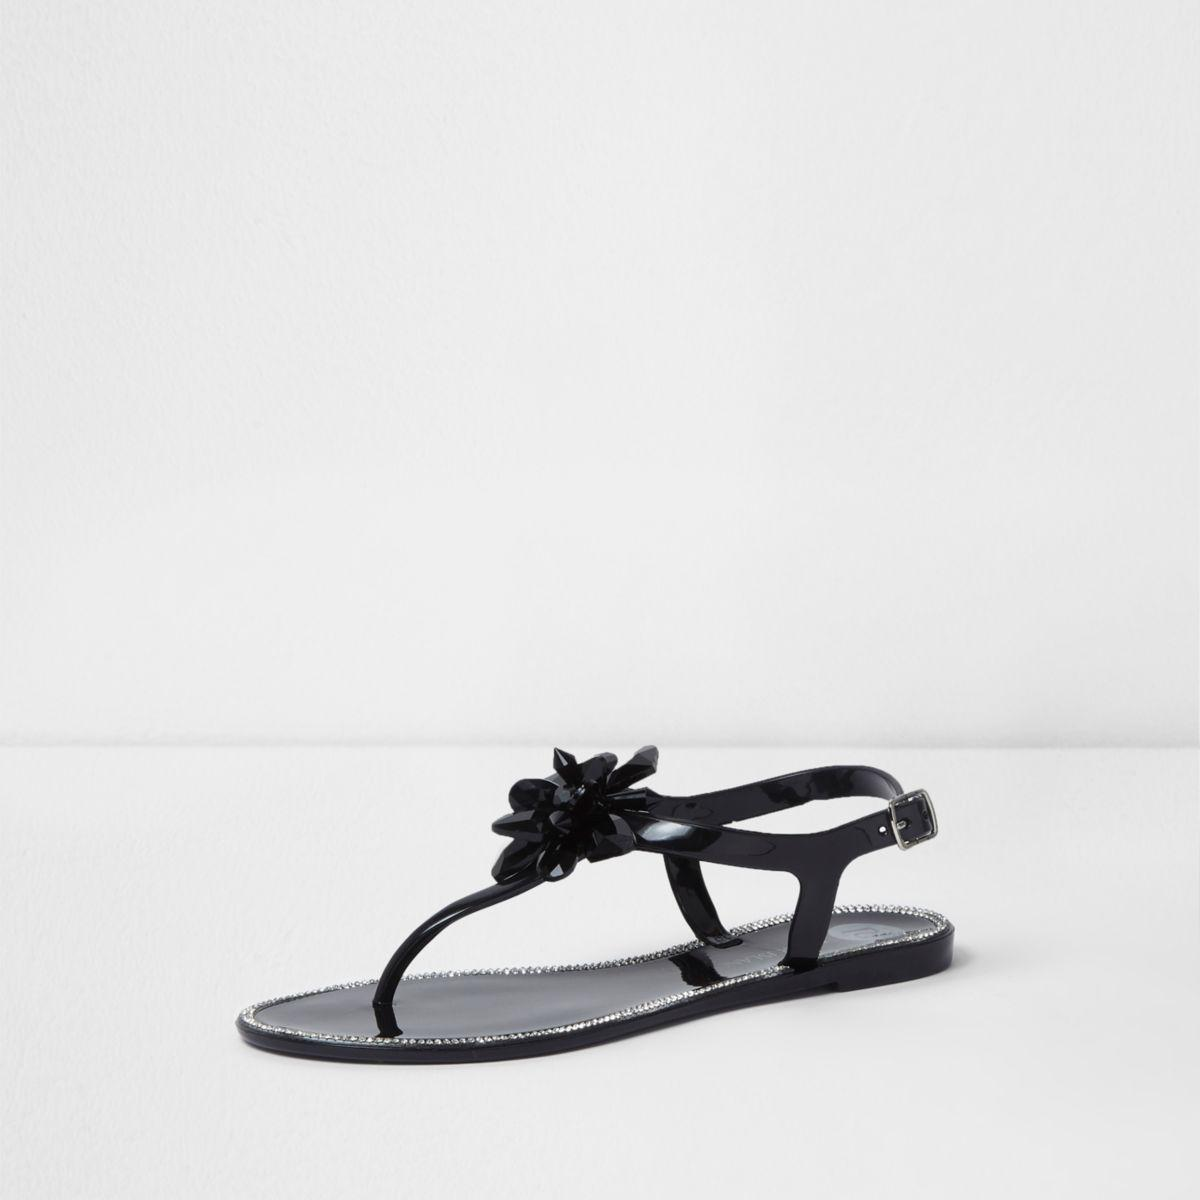 Hurry Up Drop Shipping Womens Black jelly jewel flower sandals River Island Visit New Cheap Online dt7nQ